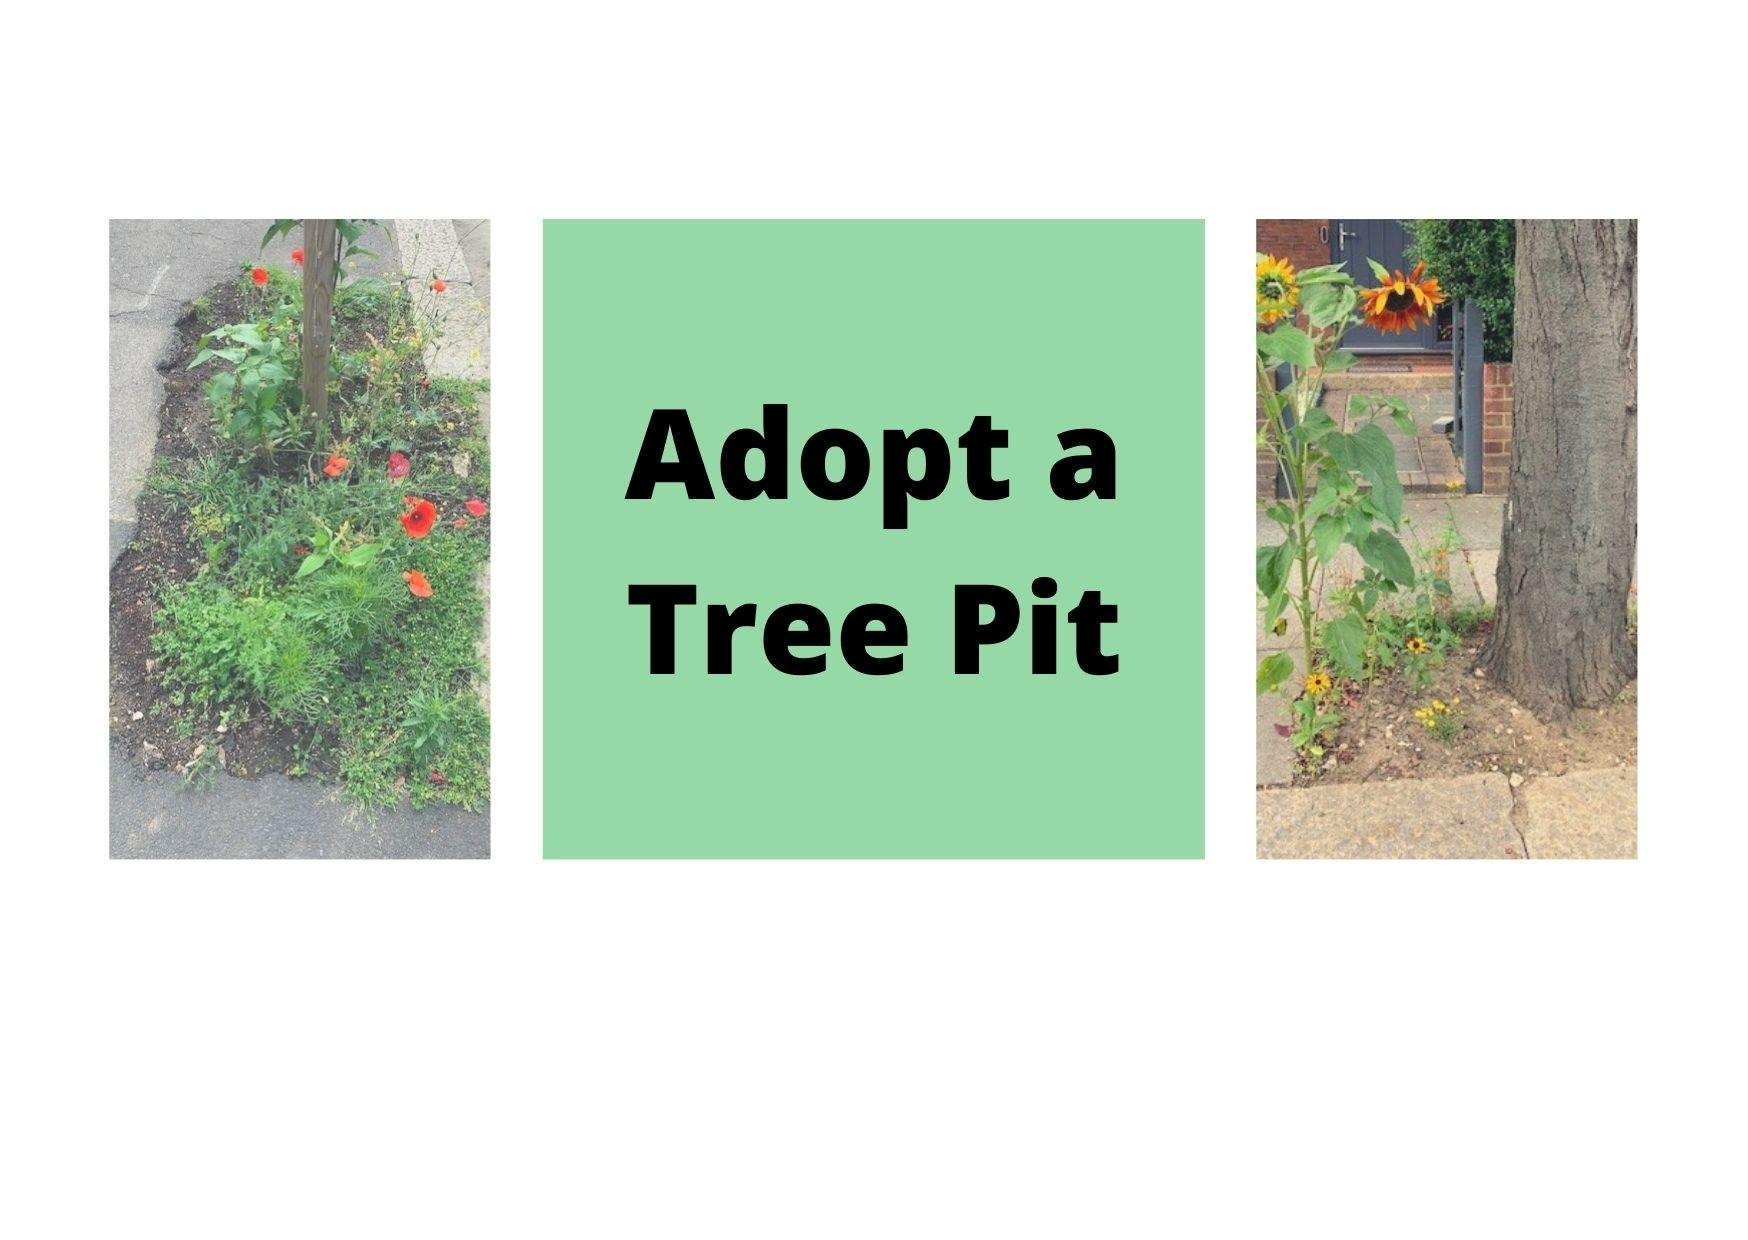 two tree pits with flowers blooming from them. The words 'adopt a tree pit' appear between the two images.